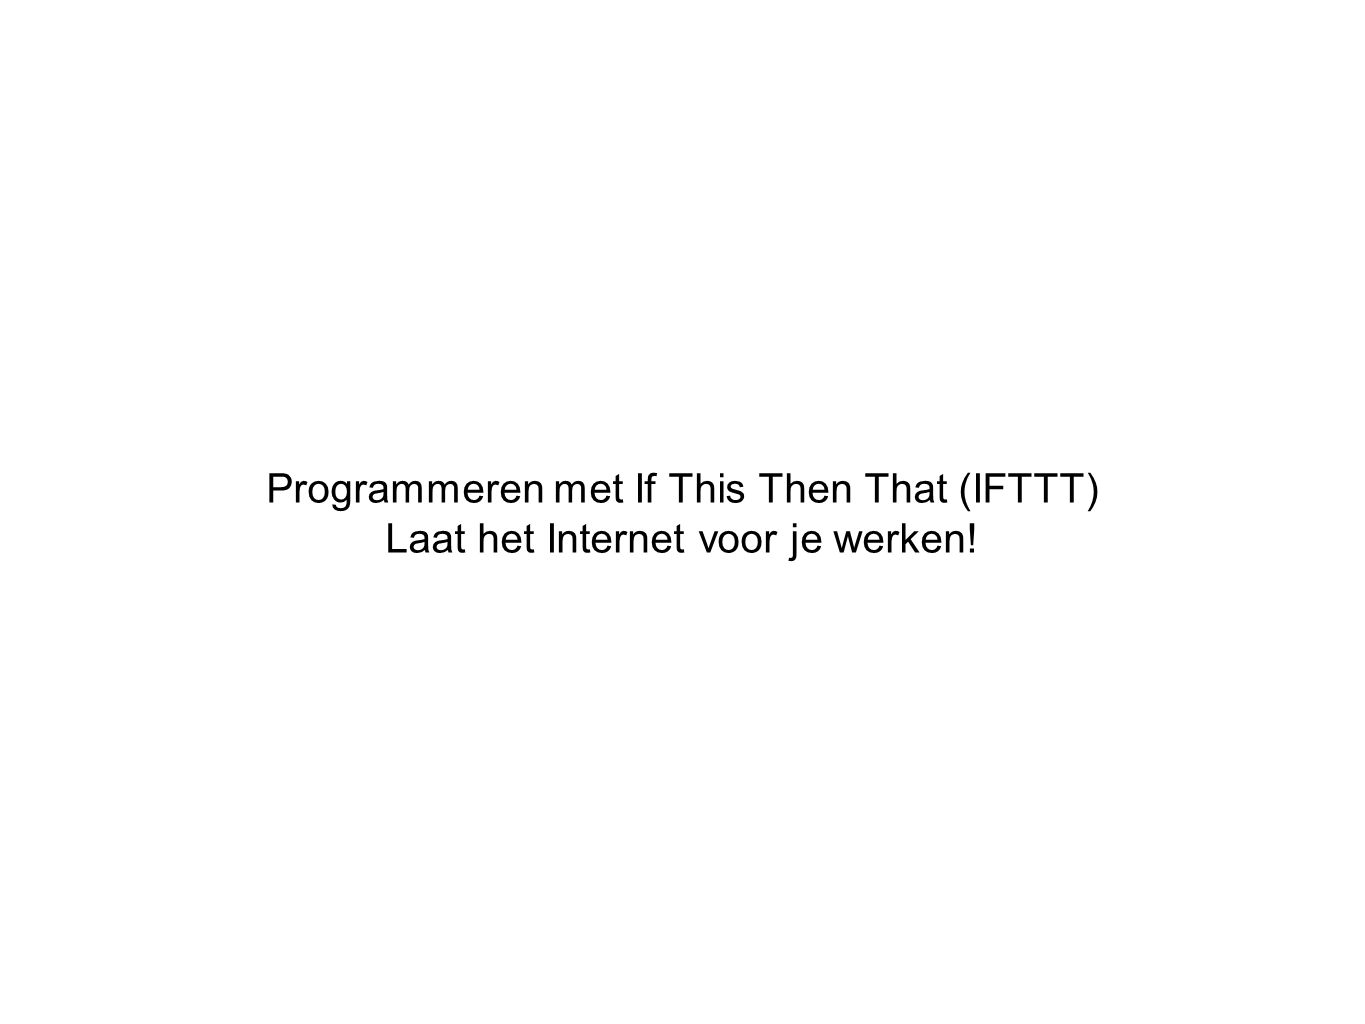 Programmeren met If This Then That (IFTTT)